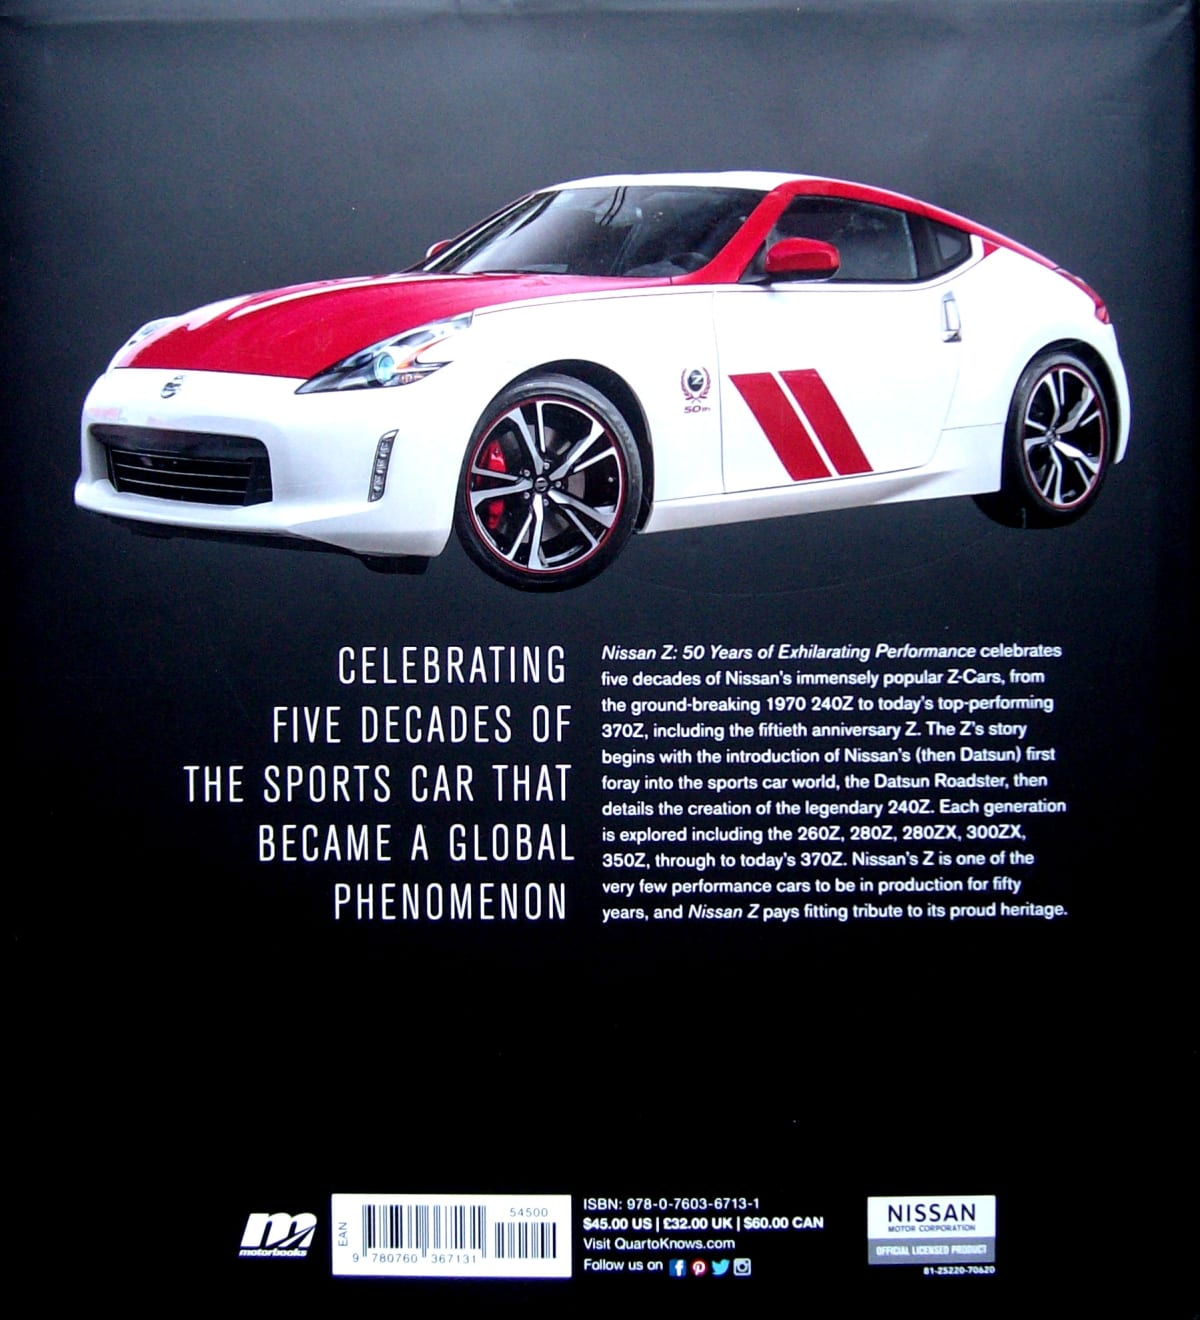 The back cover of 'Nissan Z - 50 Years of Exhilarating Performance'.